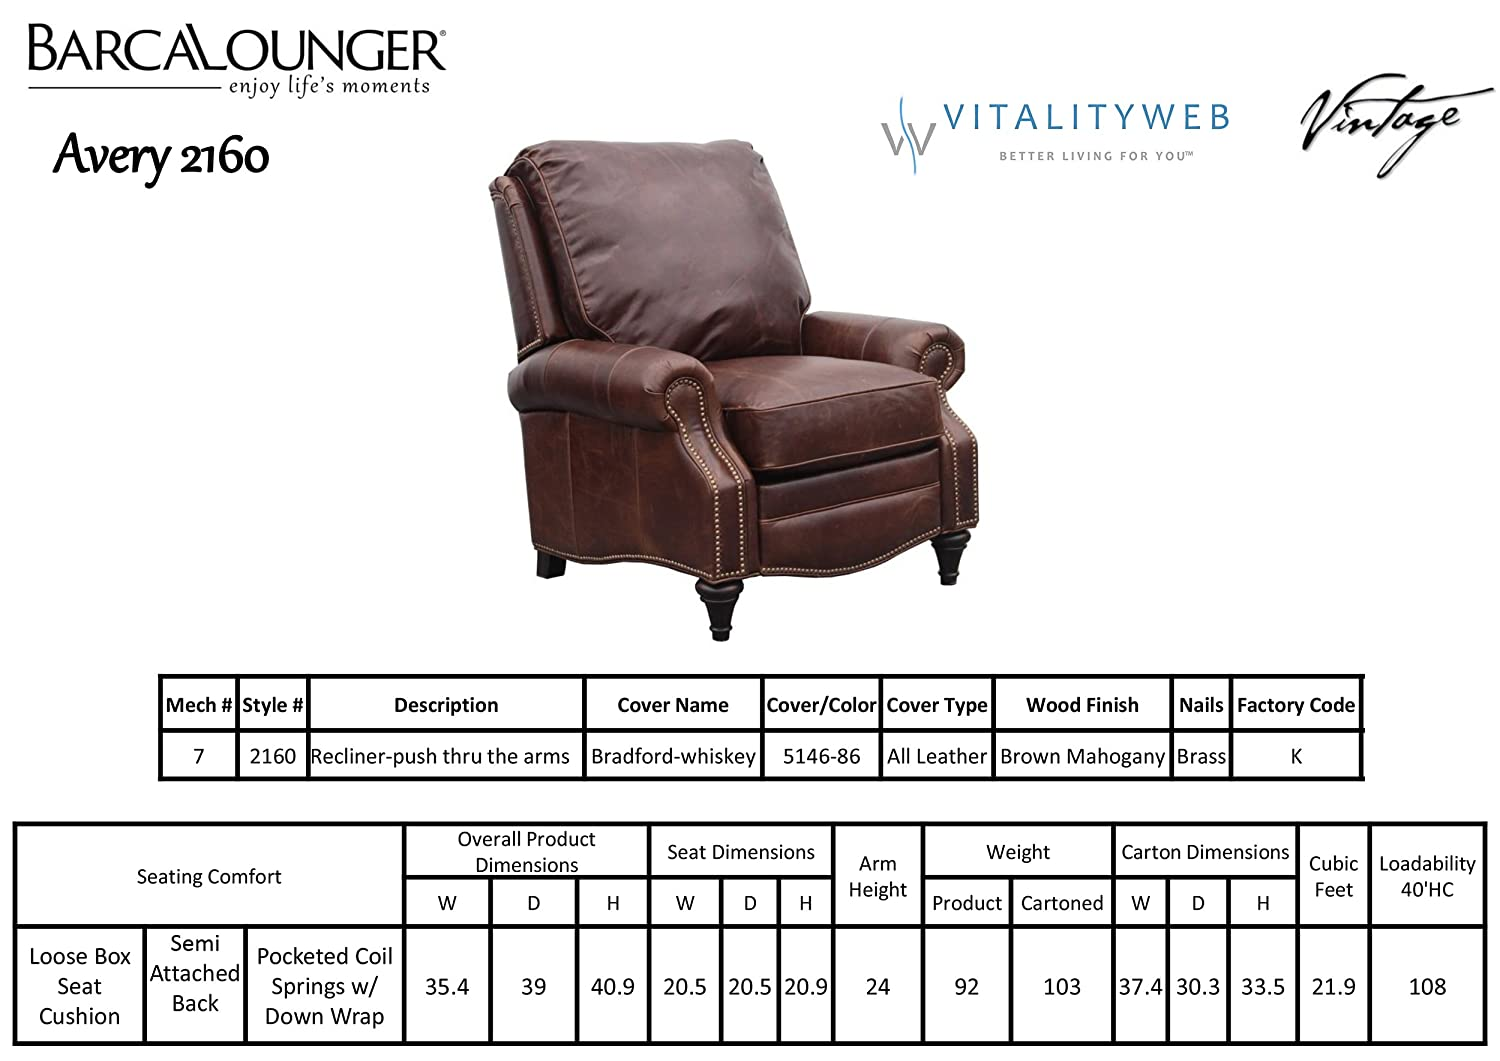 Barcalounger Avery 7-2160 Recliner Chair – Bradford Whiskey 5146-86 All Leather